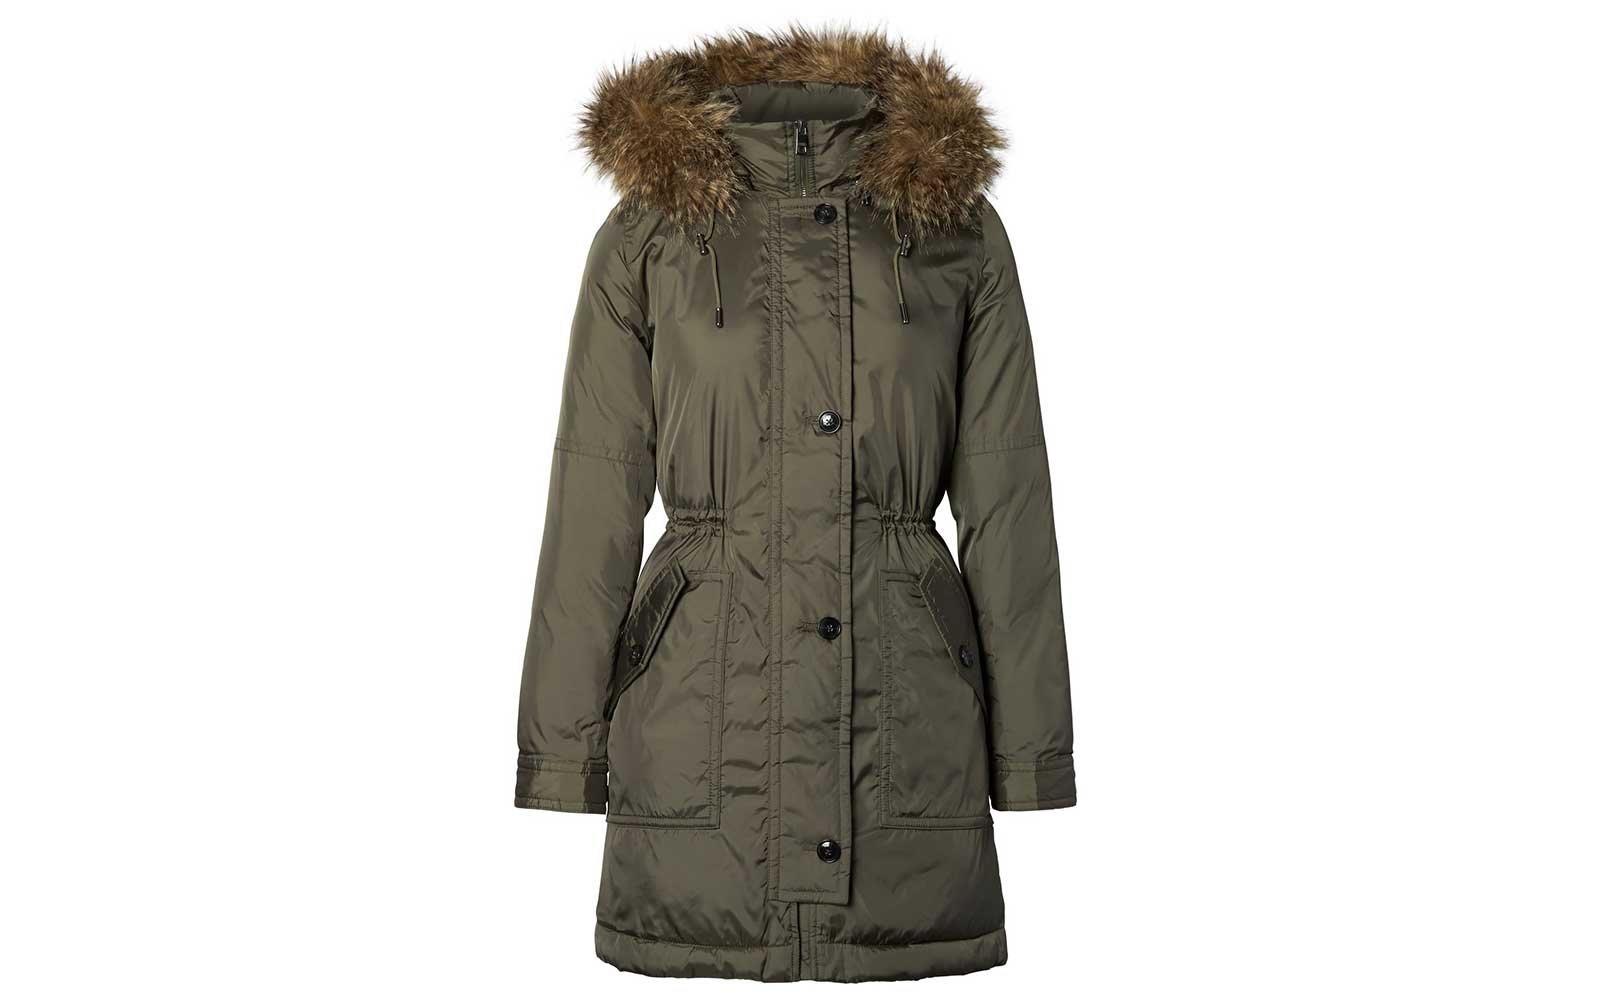 Fur trimmed parka by Banana Republic